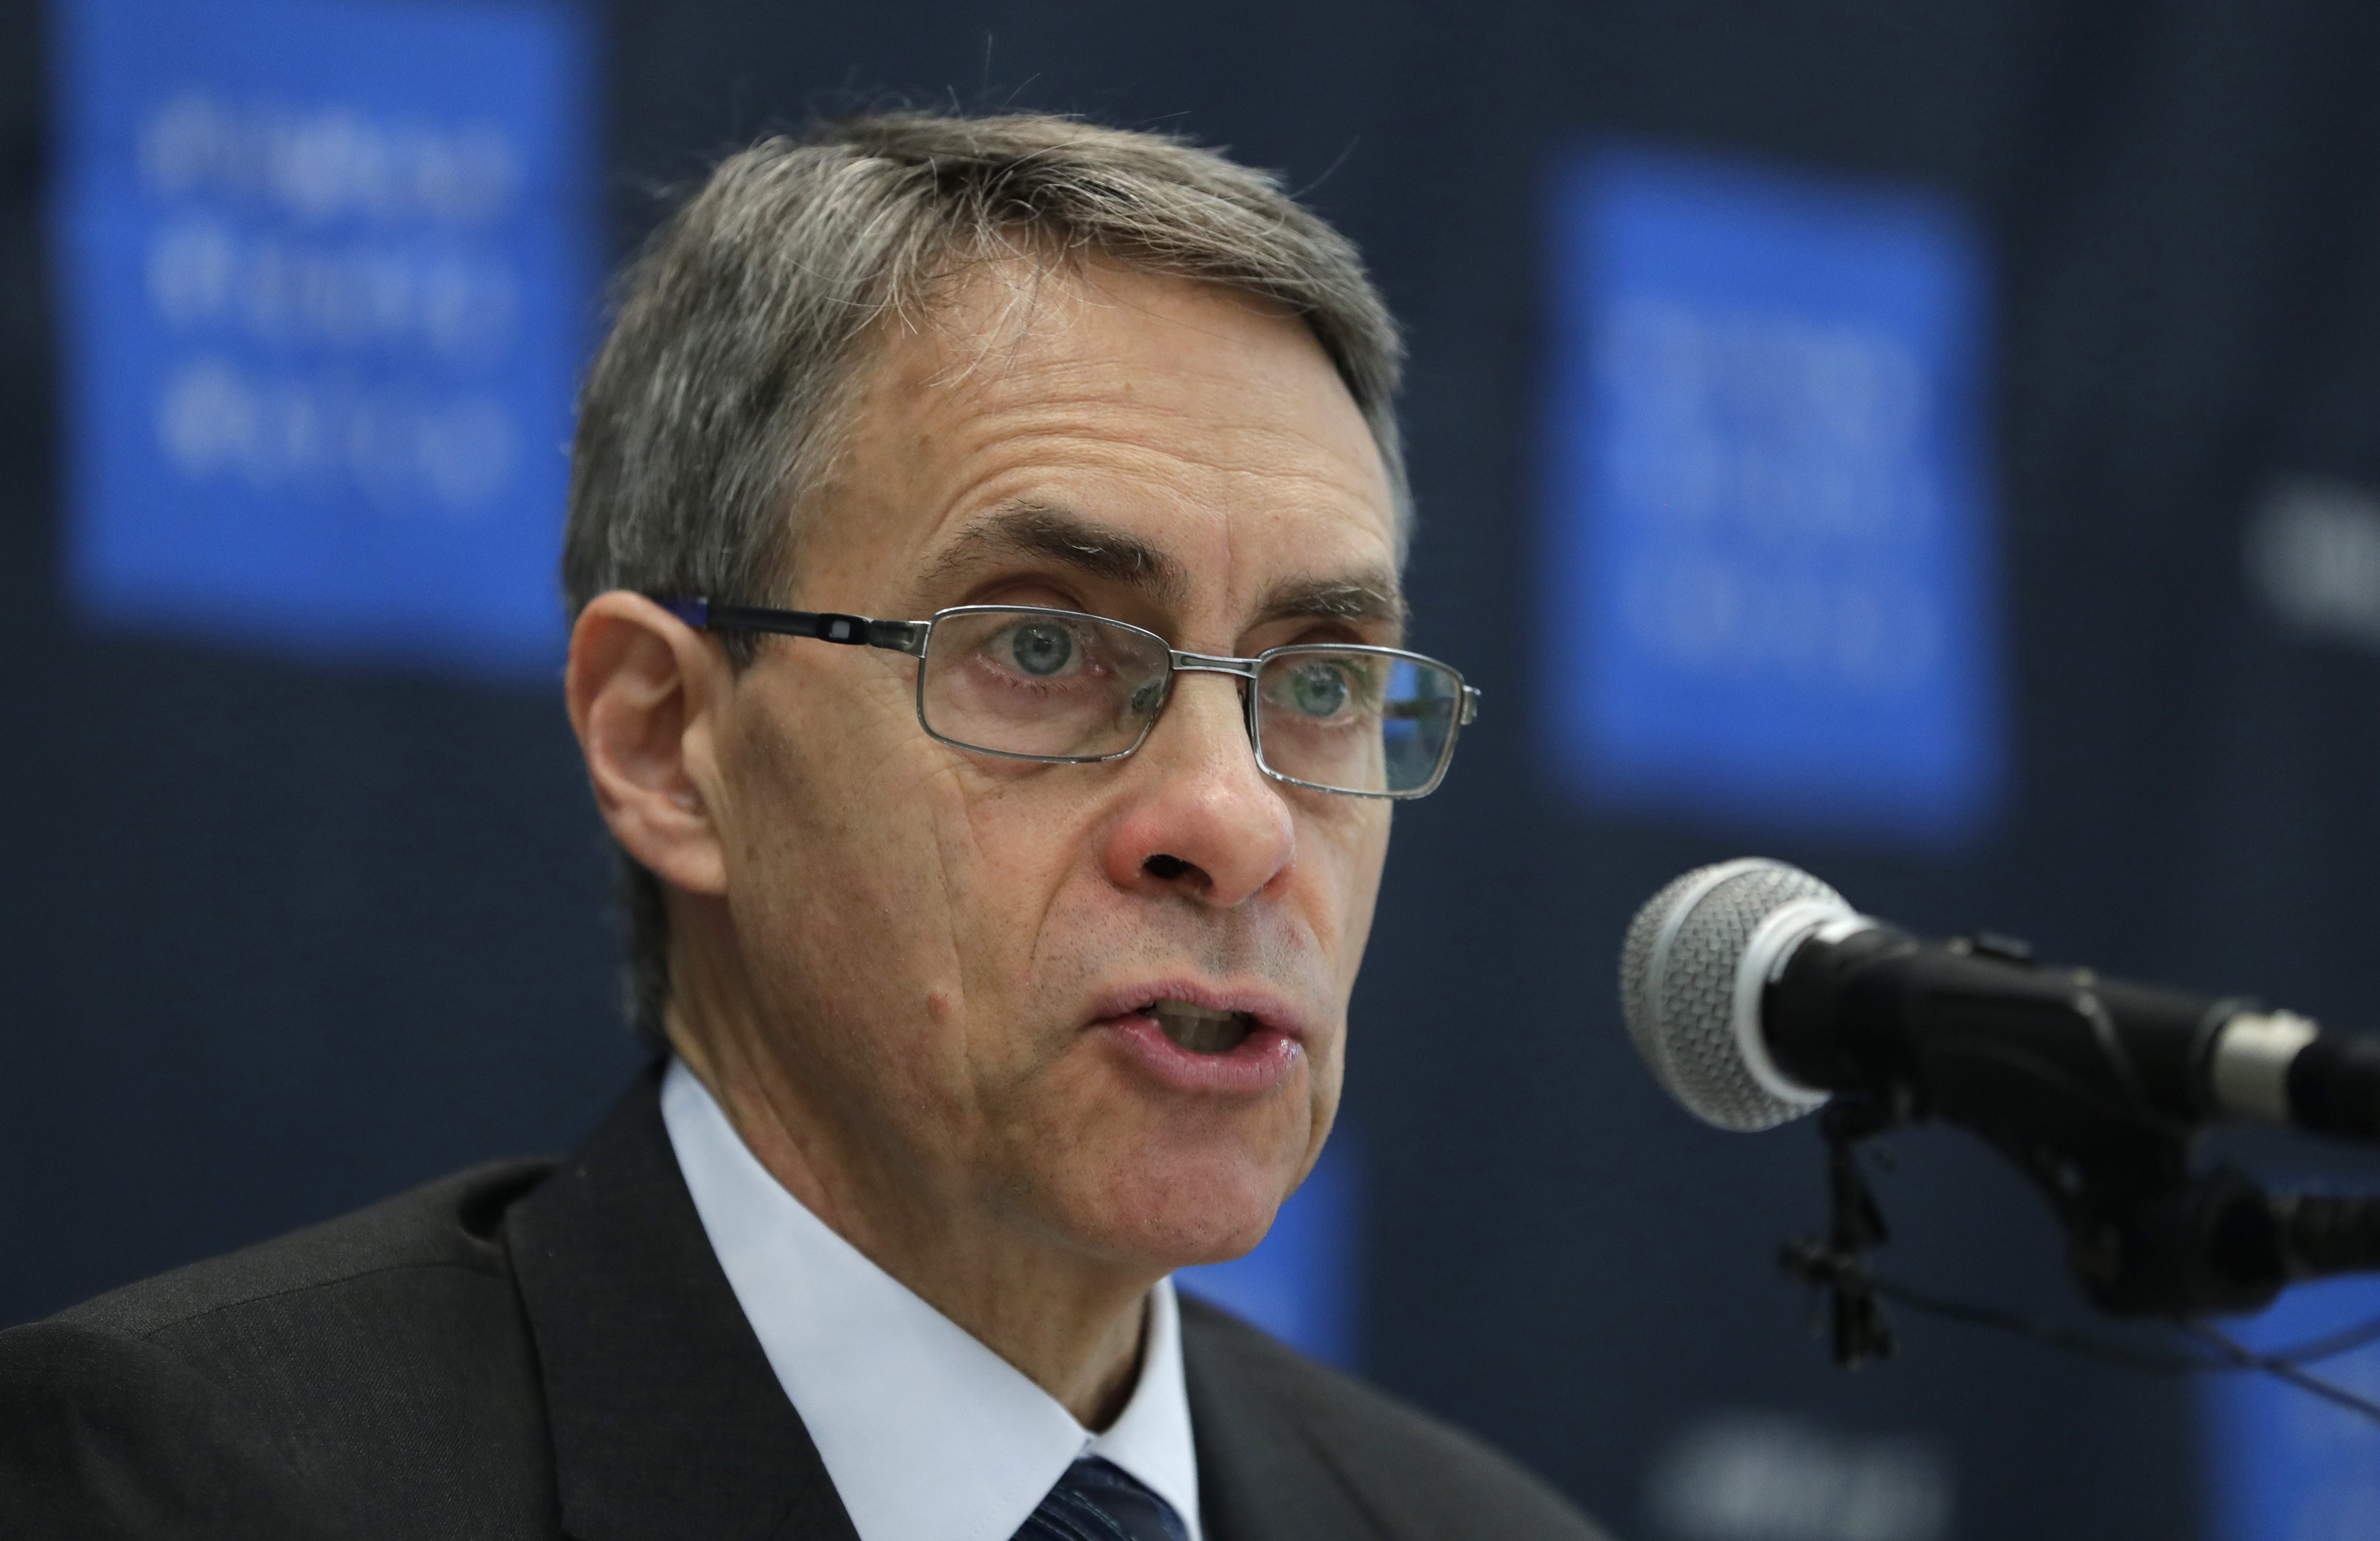 Kenneth Roth, Human Rights Watch's executive director, speaks during a news conference in Seoul, South Korea on Nov. 1, 2018.